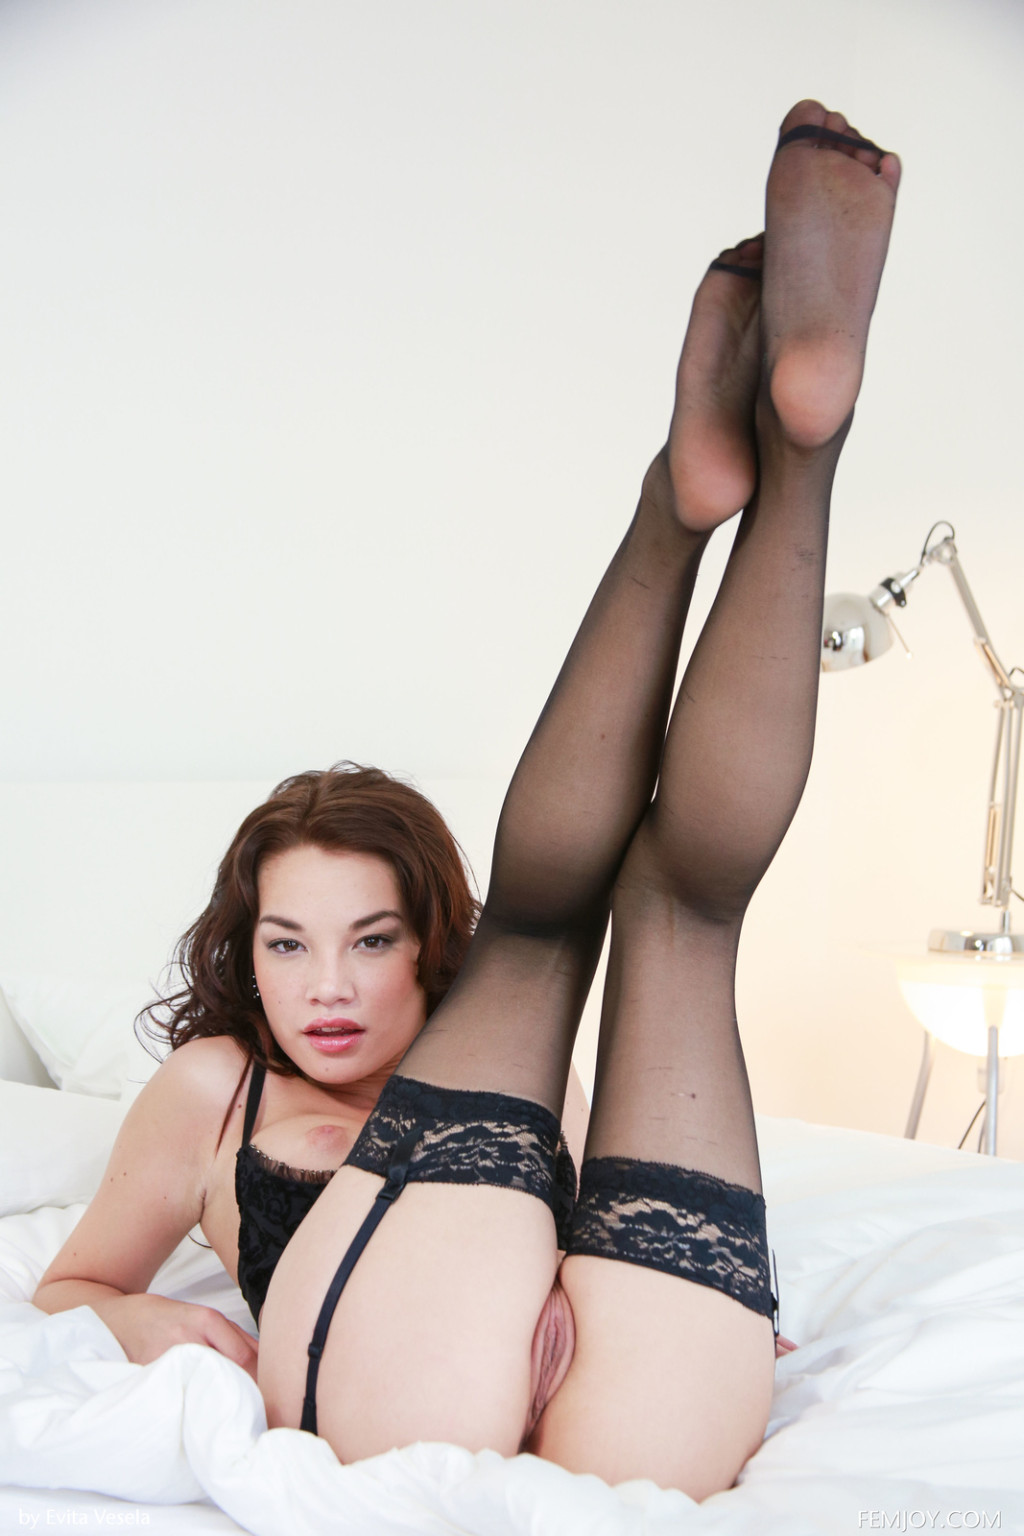 Nici dee from femjoy in stockings and suspenders